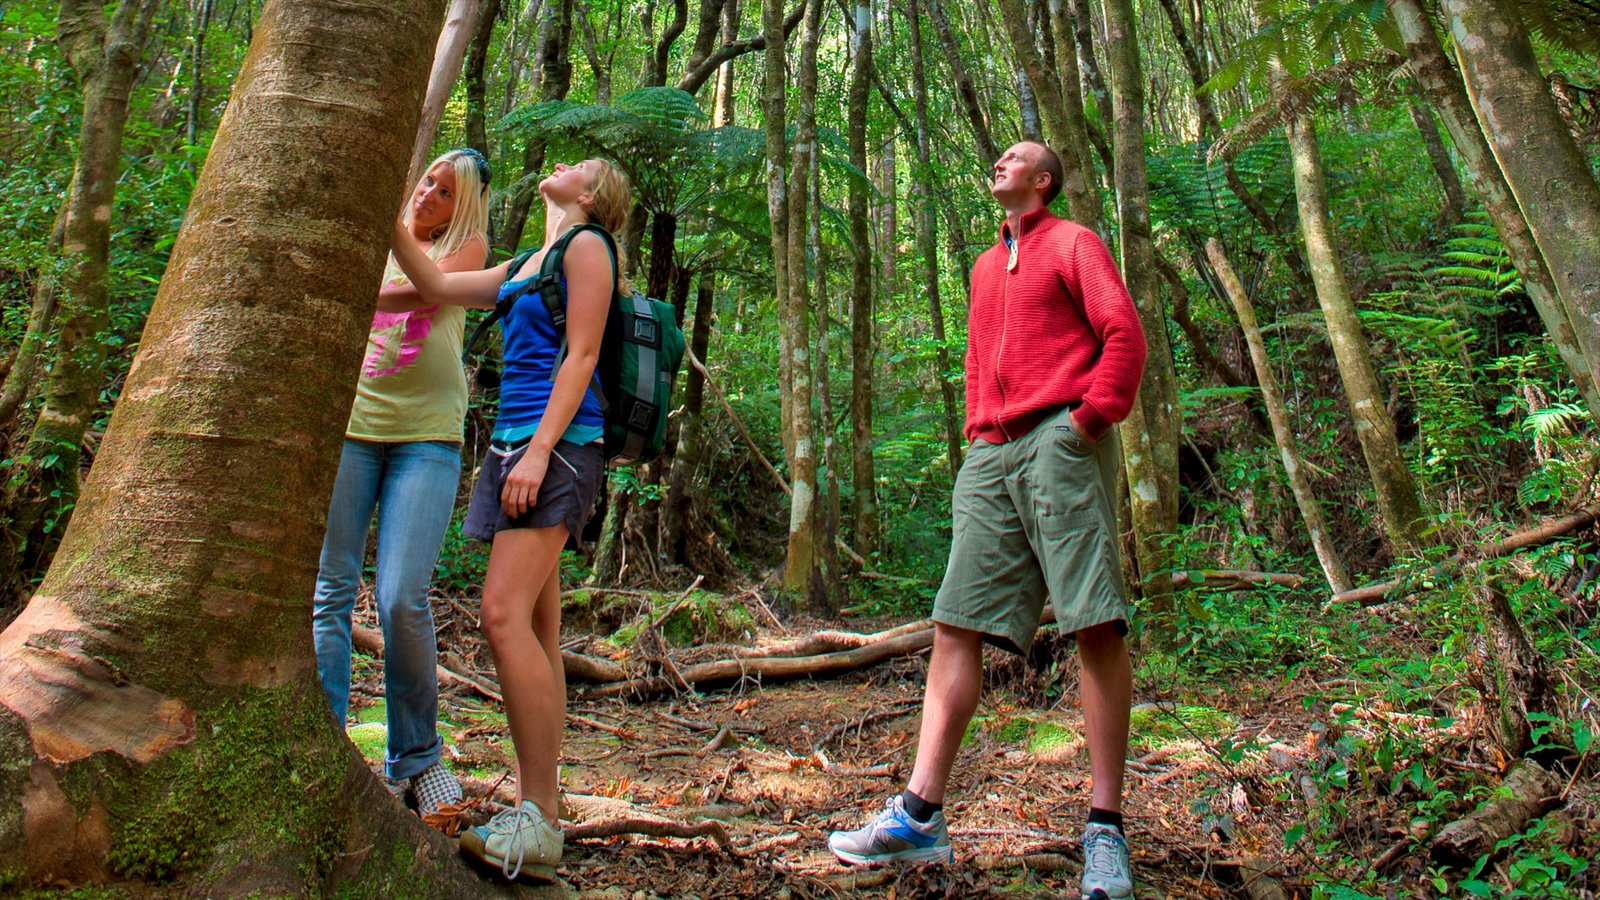 Coromandel which includes forest scenes, rainforest and hiking or walking